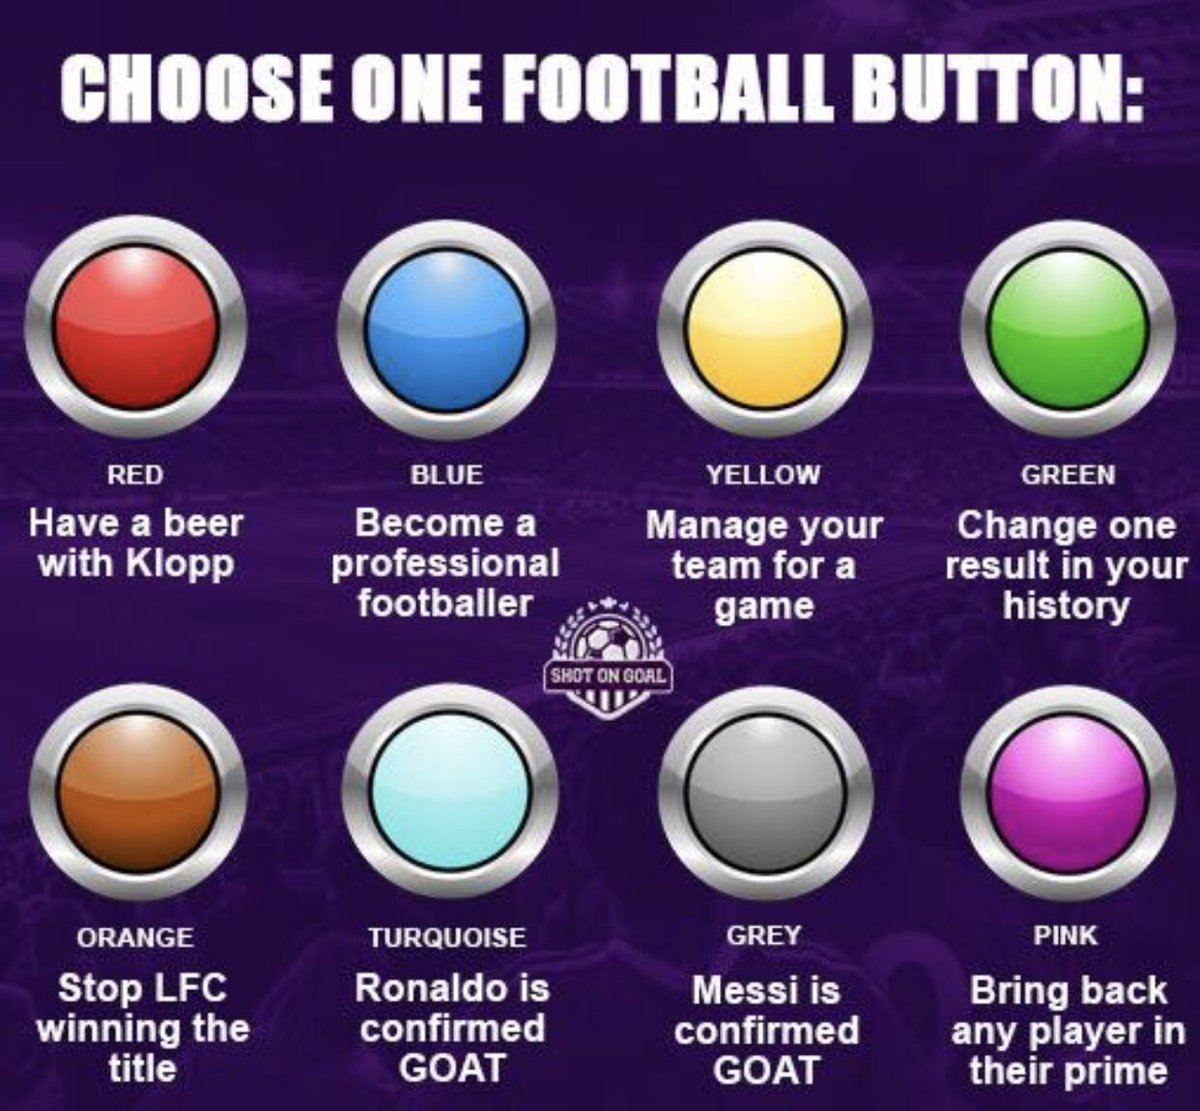 Which button are you pressing and why? 🤔